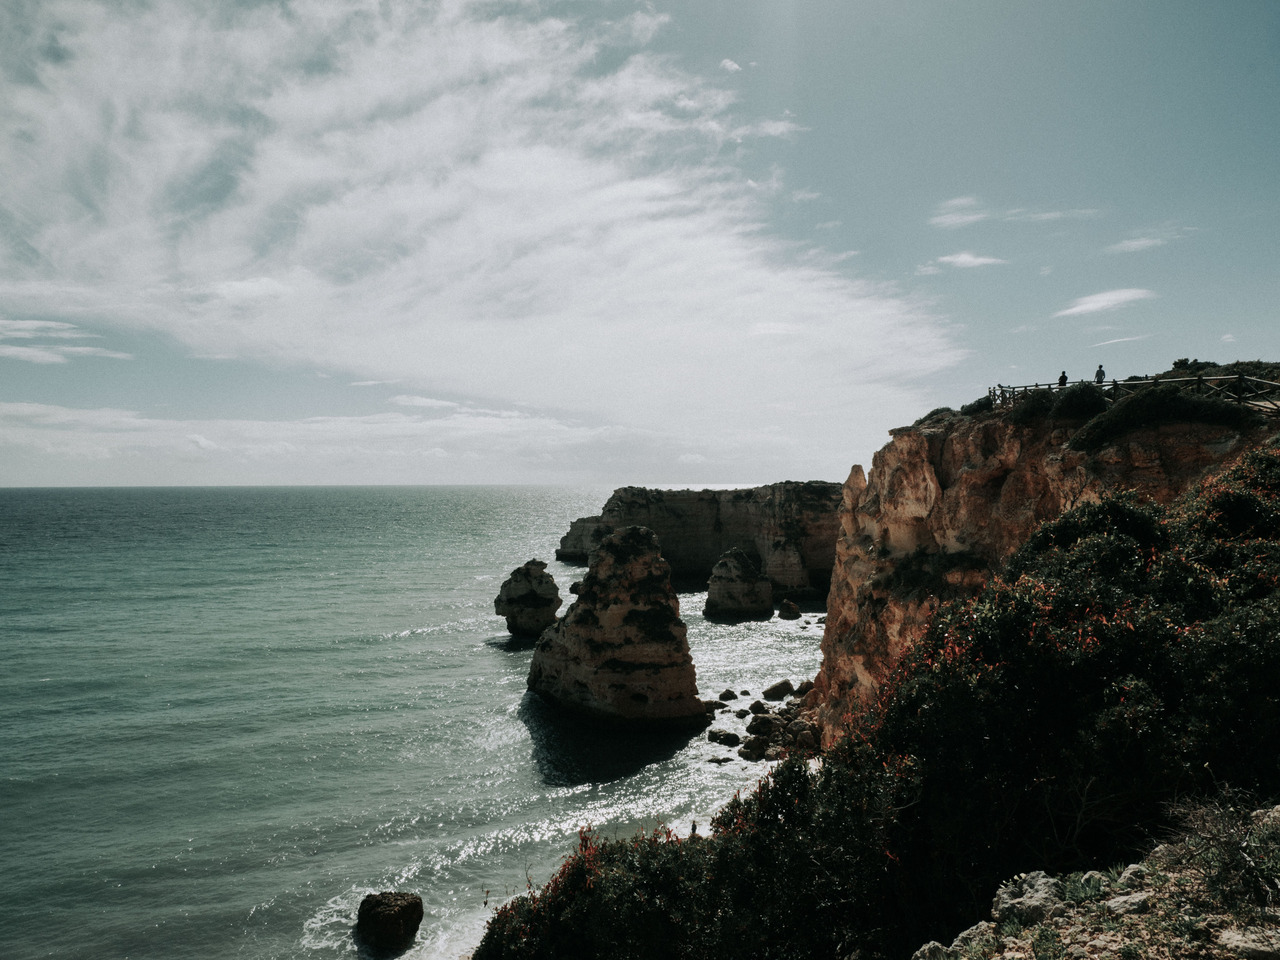 photographer, photography and algarve